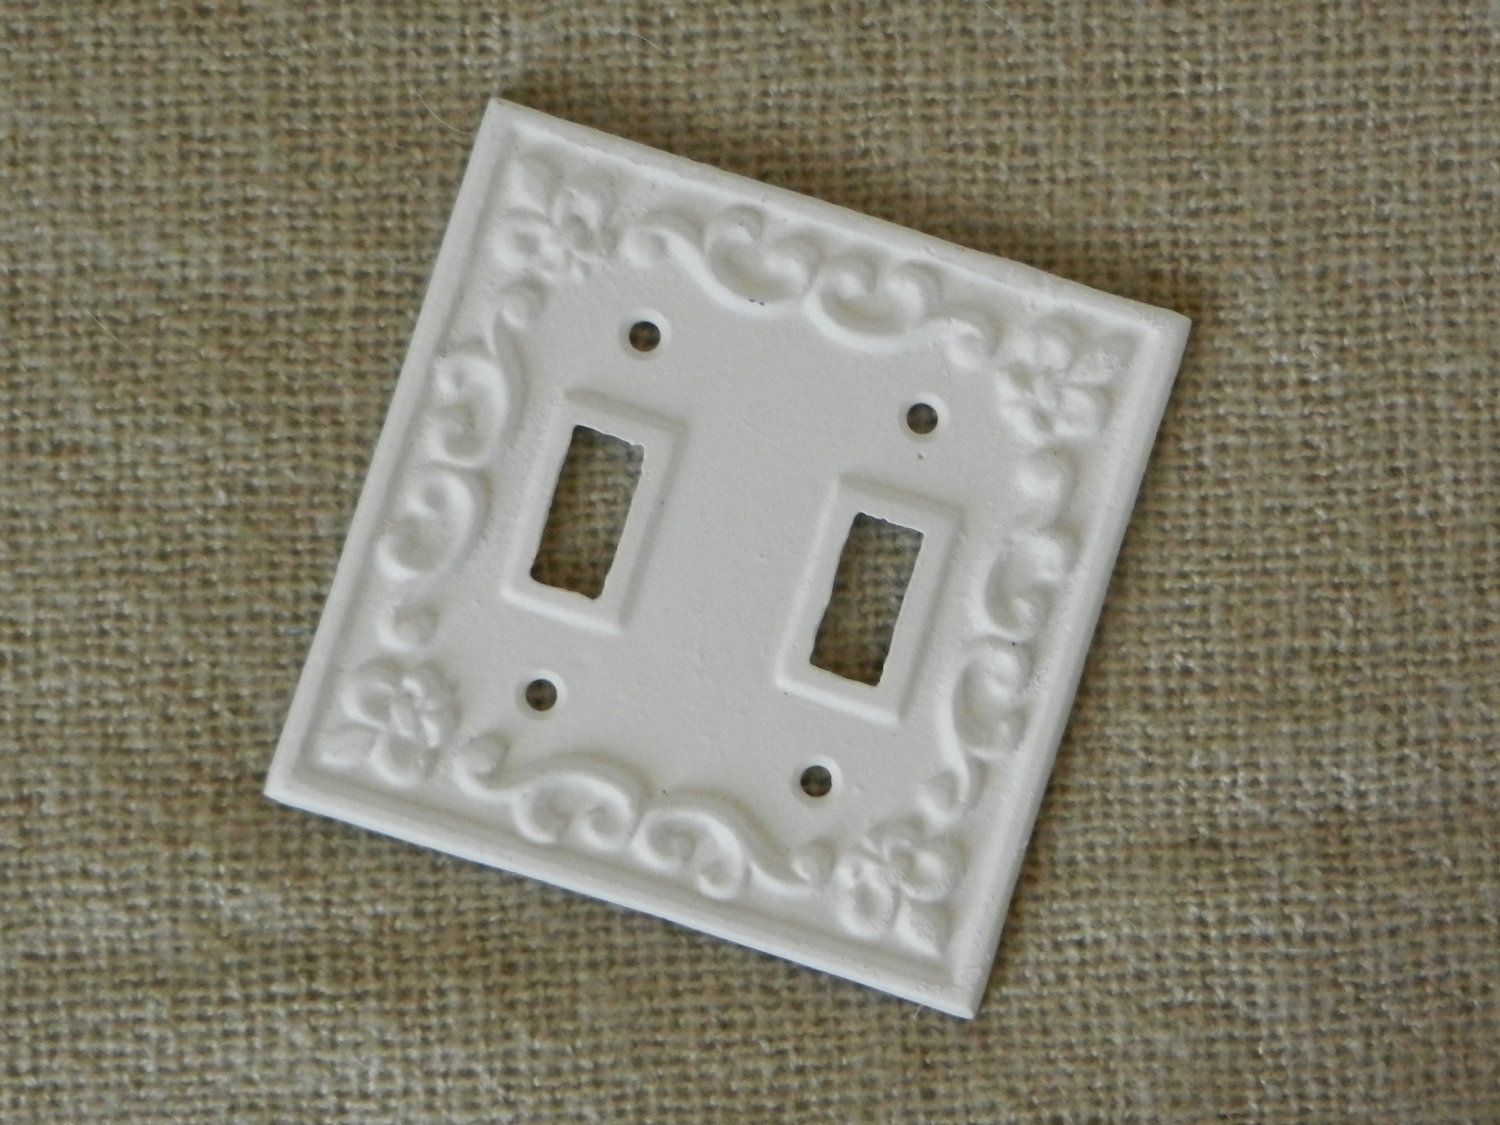 White Cast Iron Light Switch Cover Double By Juxtapositionsc, $11.00